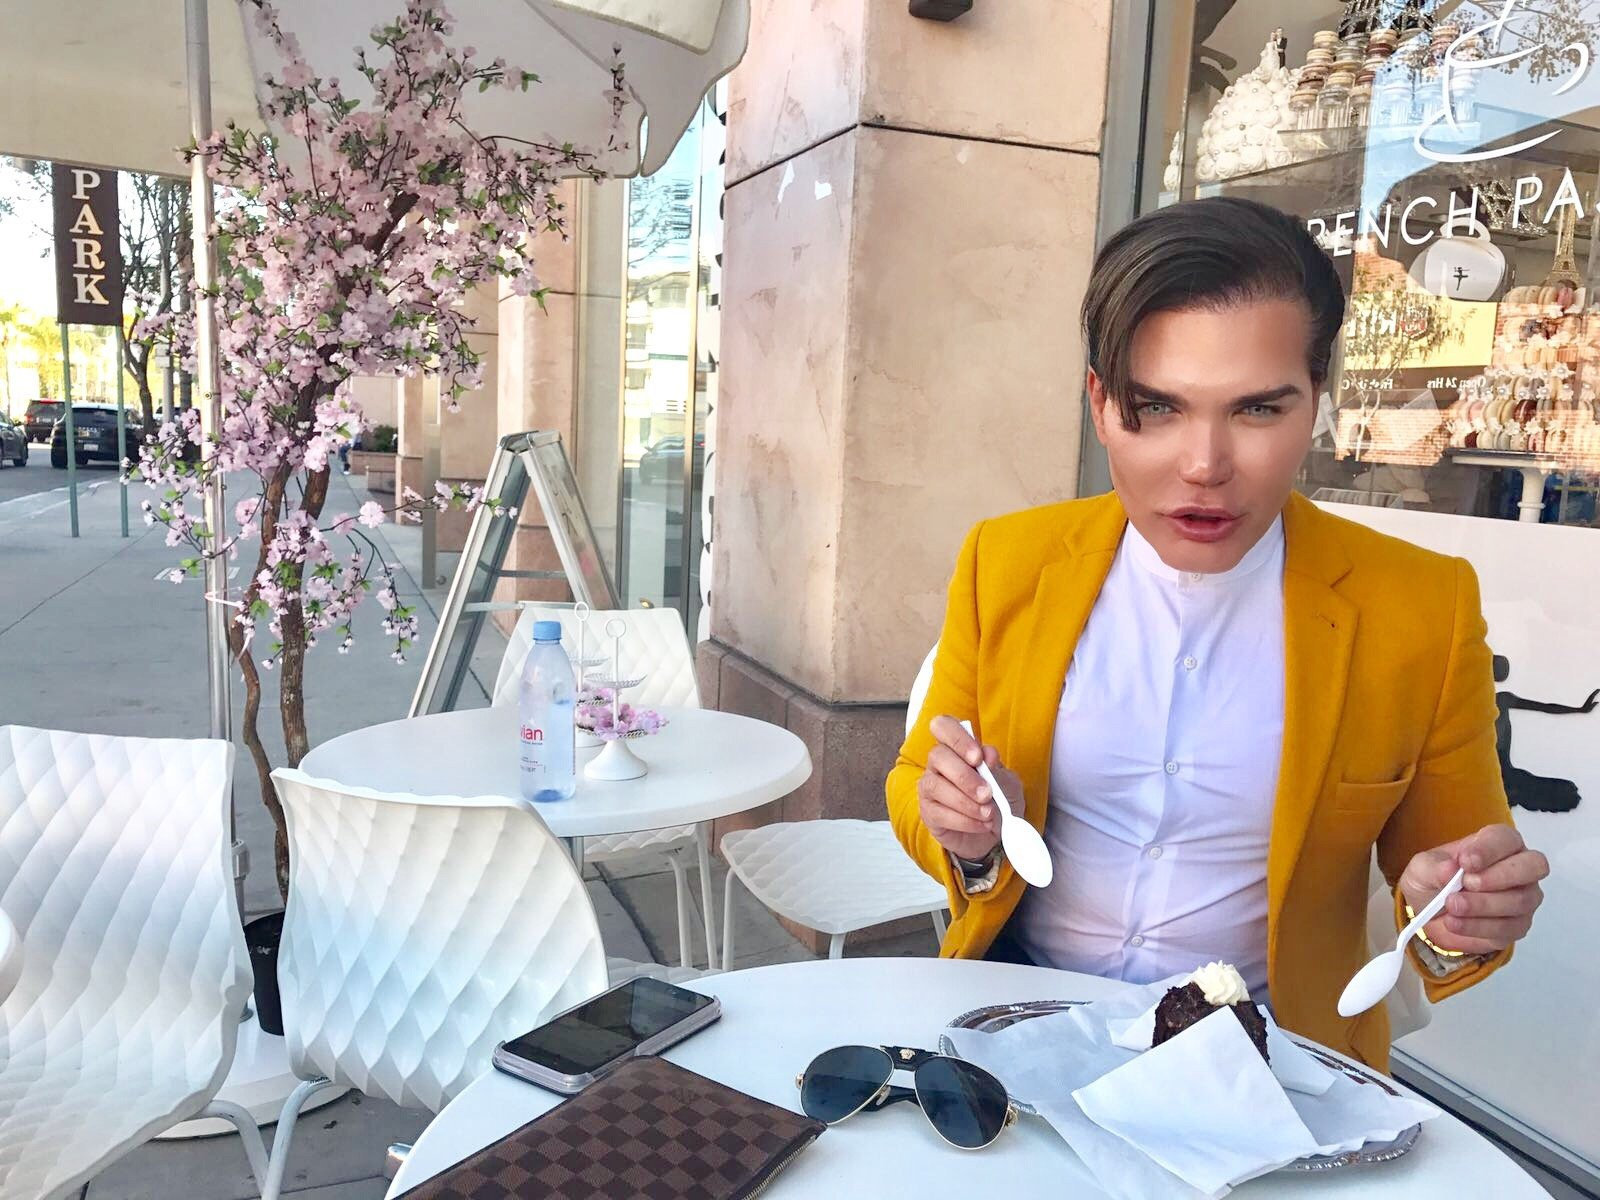 "Human Ken doll Rodrigo Alves pictured piling on the pounds so he can have his own fat surgically removed and used as a bottom filler. See SWNS story SWKEN; A human Ken doll and plastic surgery addict has GAINED two stones to have liposuction - so surgeons can pump the fat back into his BUM. Rodrigo Alves, 33, has already spent £360,000 on dozens of body-changing operations - including liposuction, six-pack implants and botox fillers. But the former air steward has spent the last few months eating cakes and puddings to pile on the pounds, gorging on more than 3,000 calories a day. He has gained two stones so he can have the fat transferred from his back, waist, and thighs and into his lower legs and bum to make them more ""contoured""."